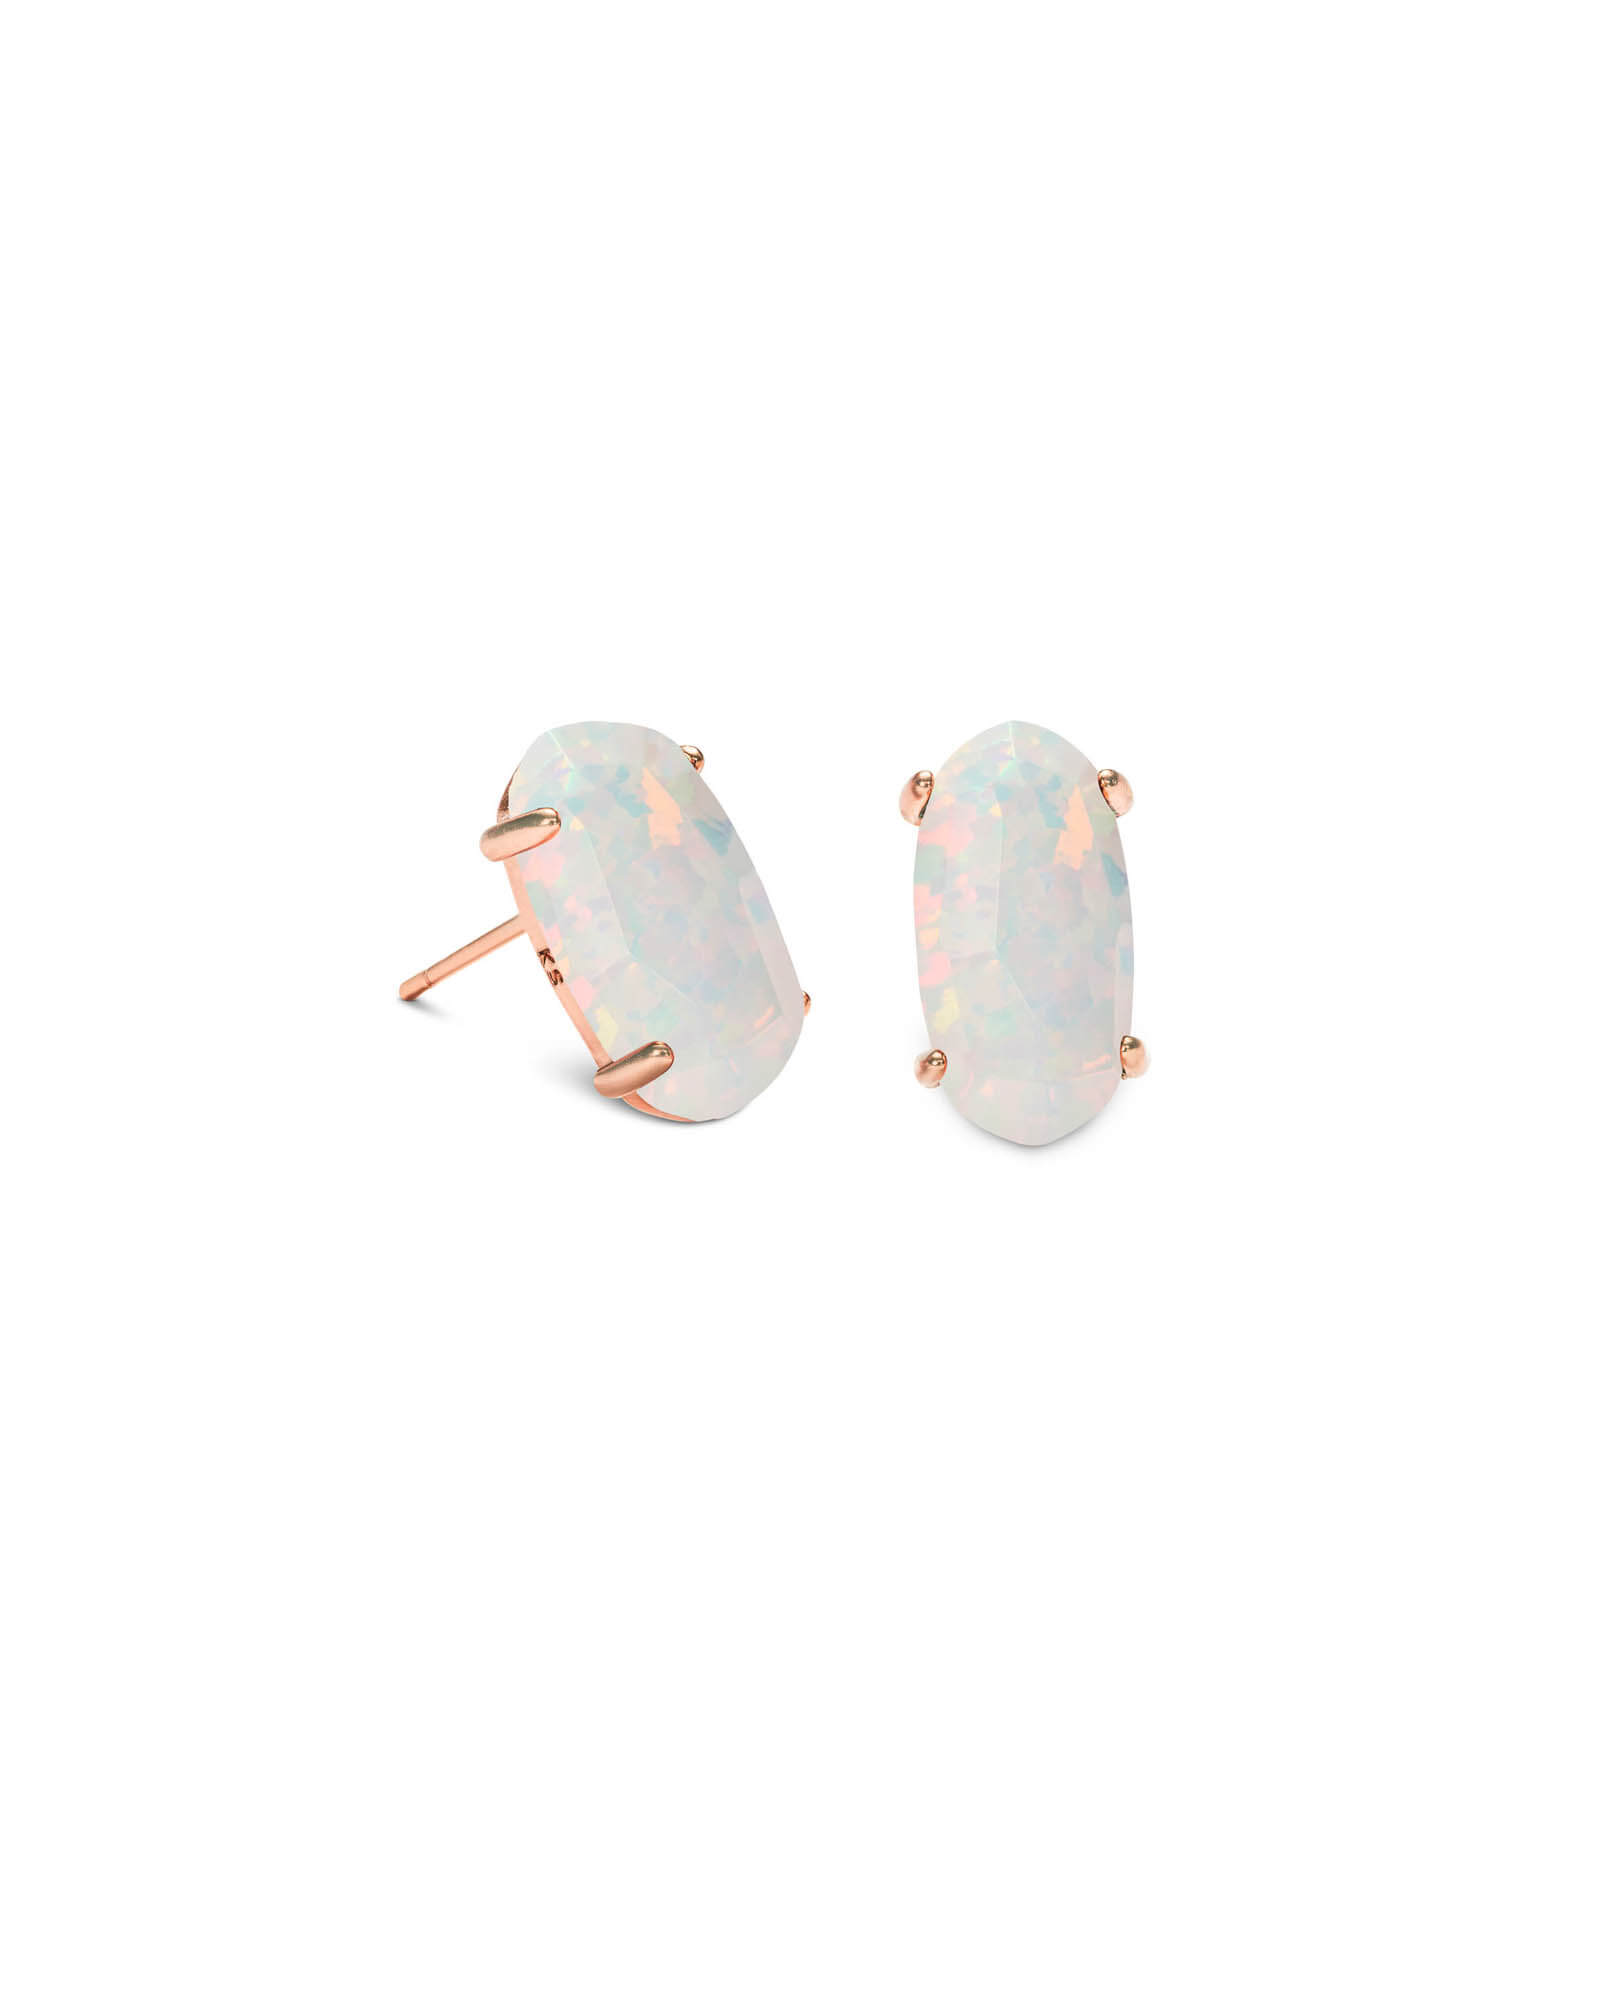 Betty Rose Gold Stud Earrings in White Kyocera Opal